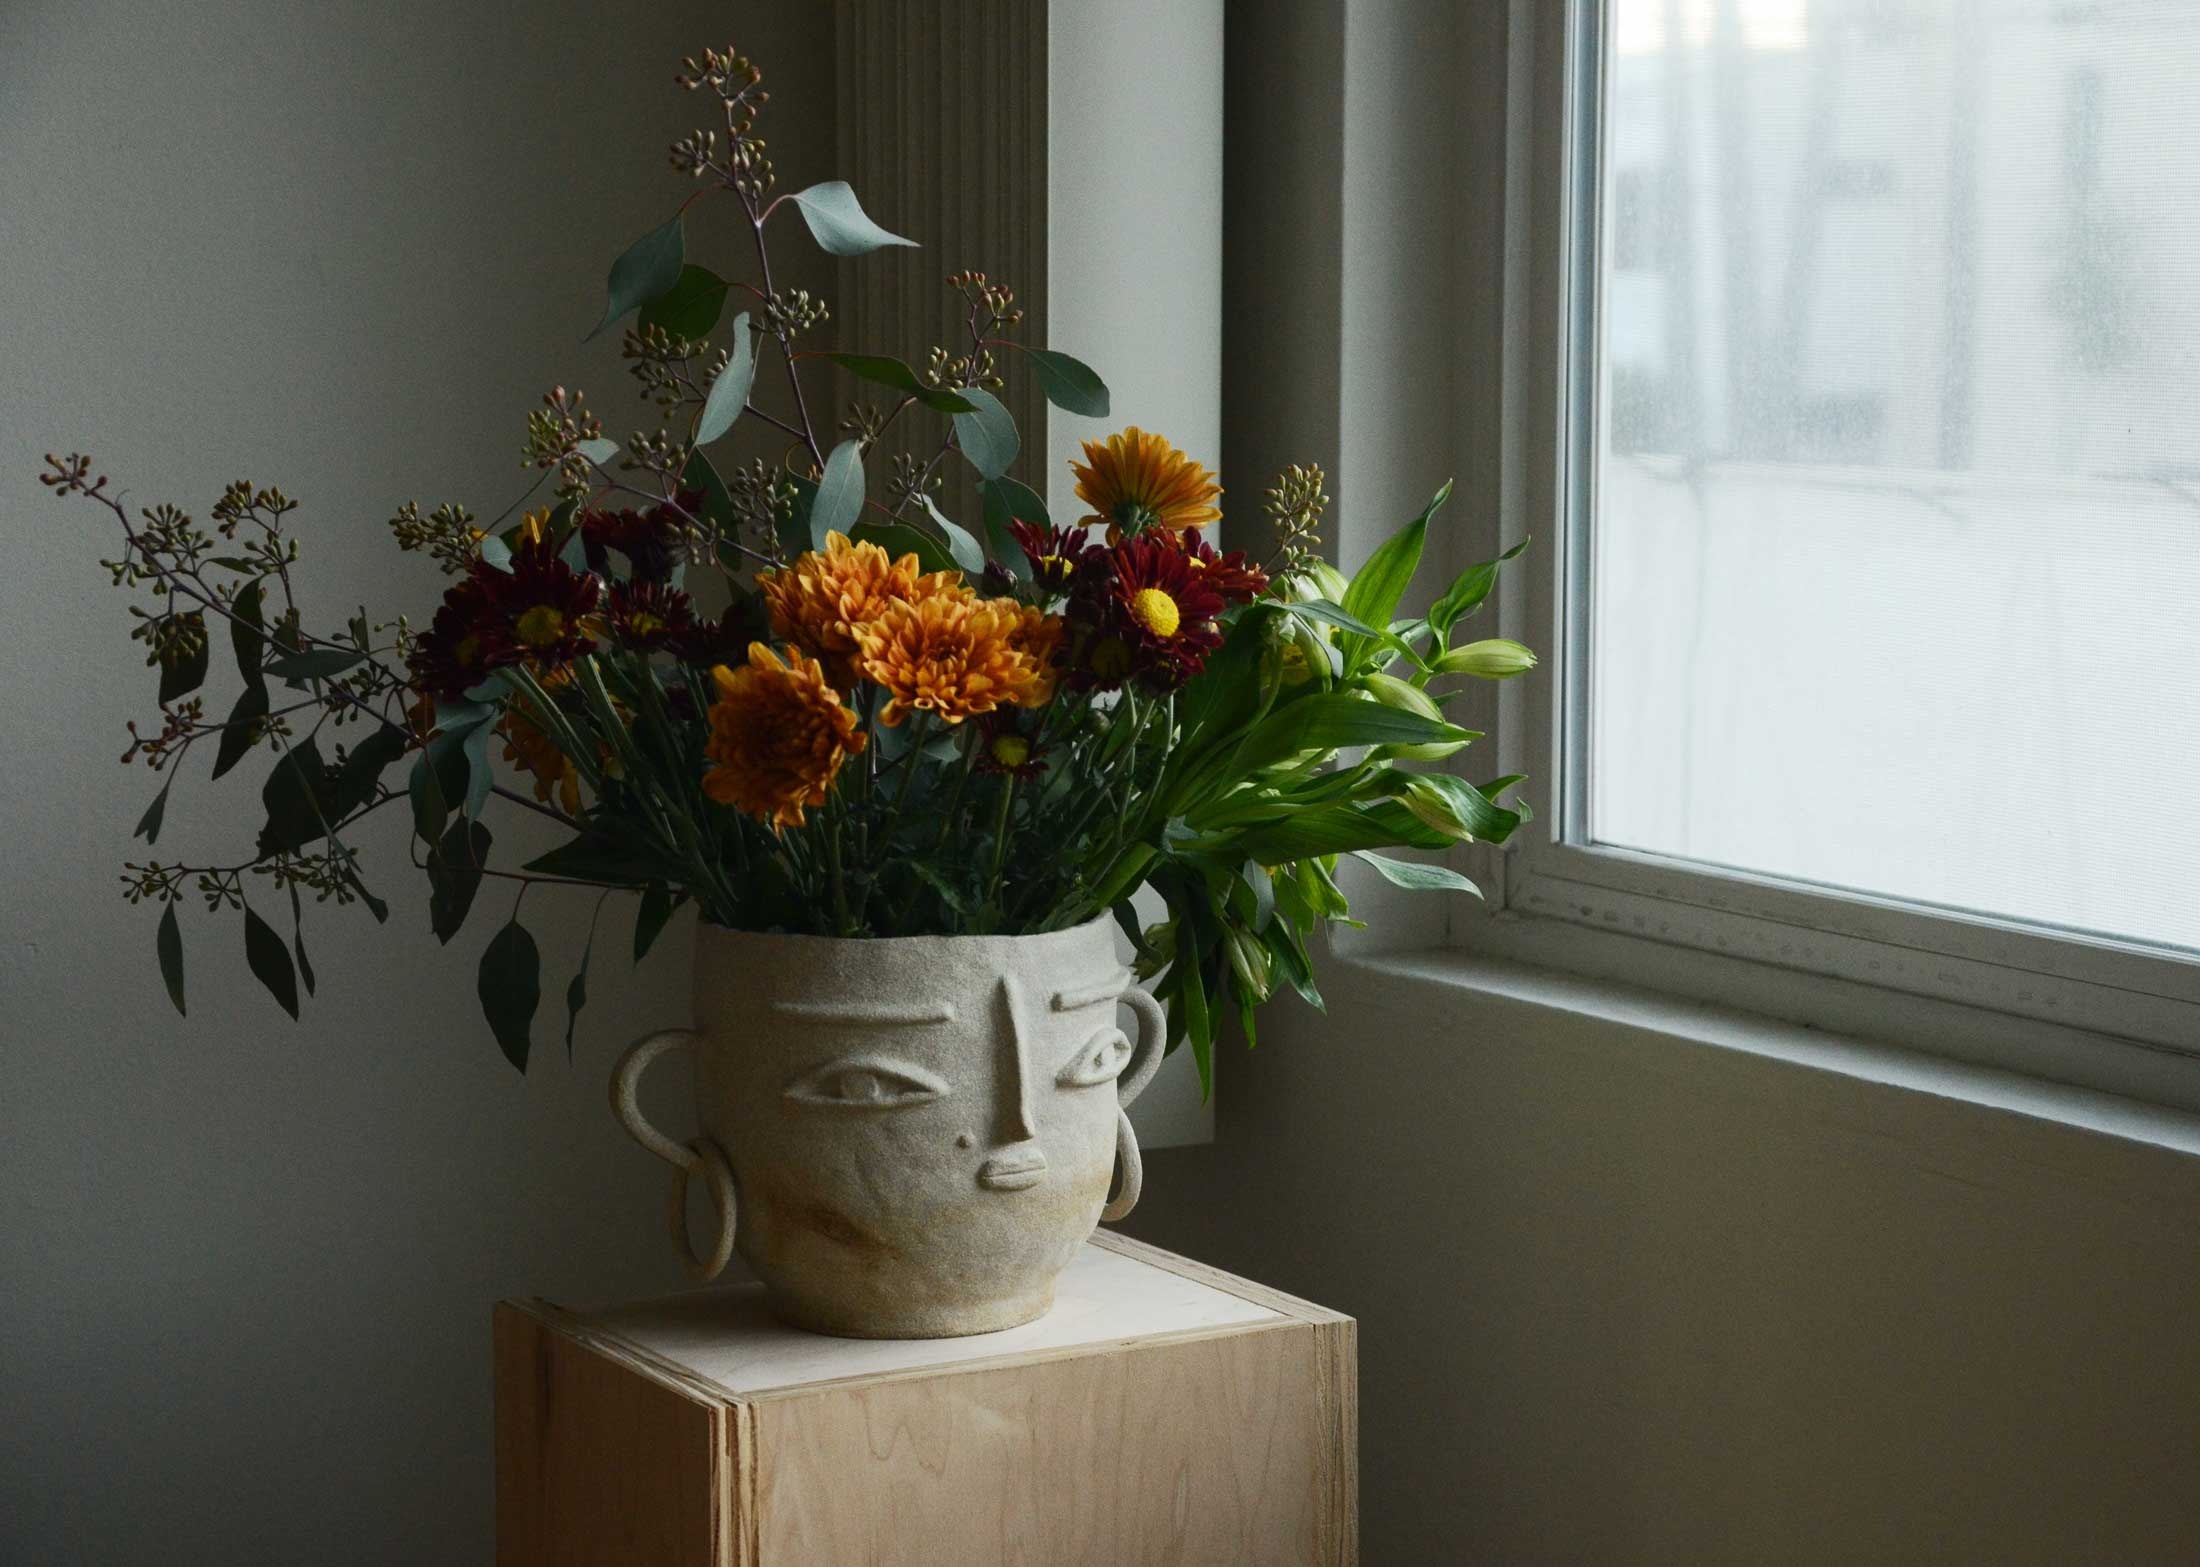 Flowers vase with face